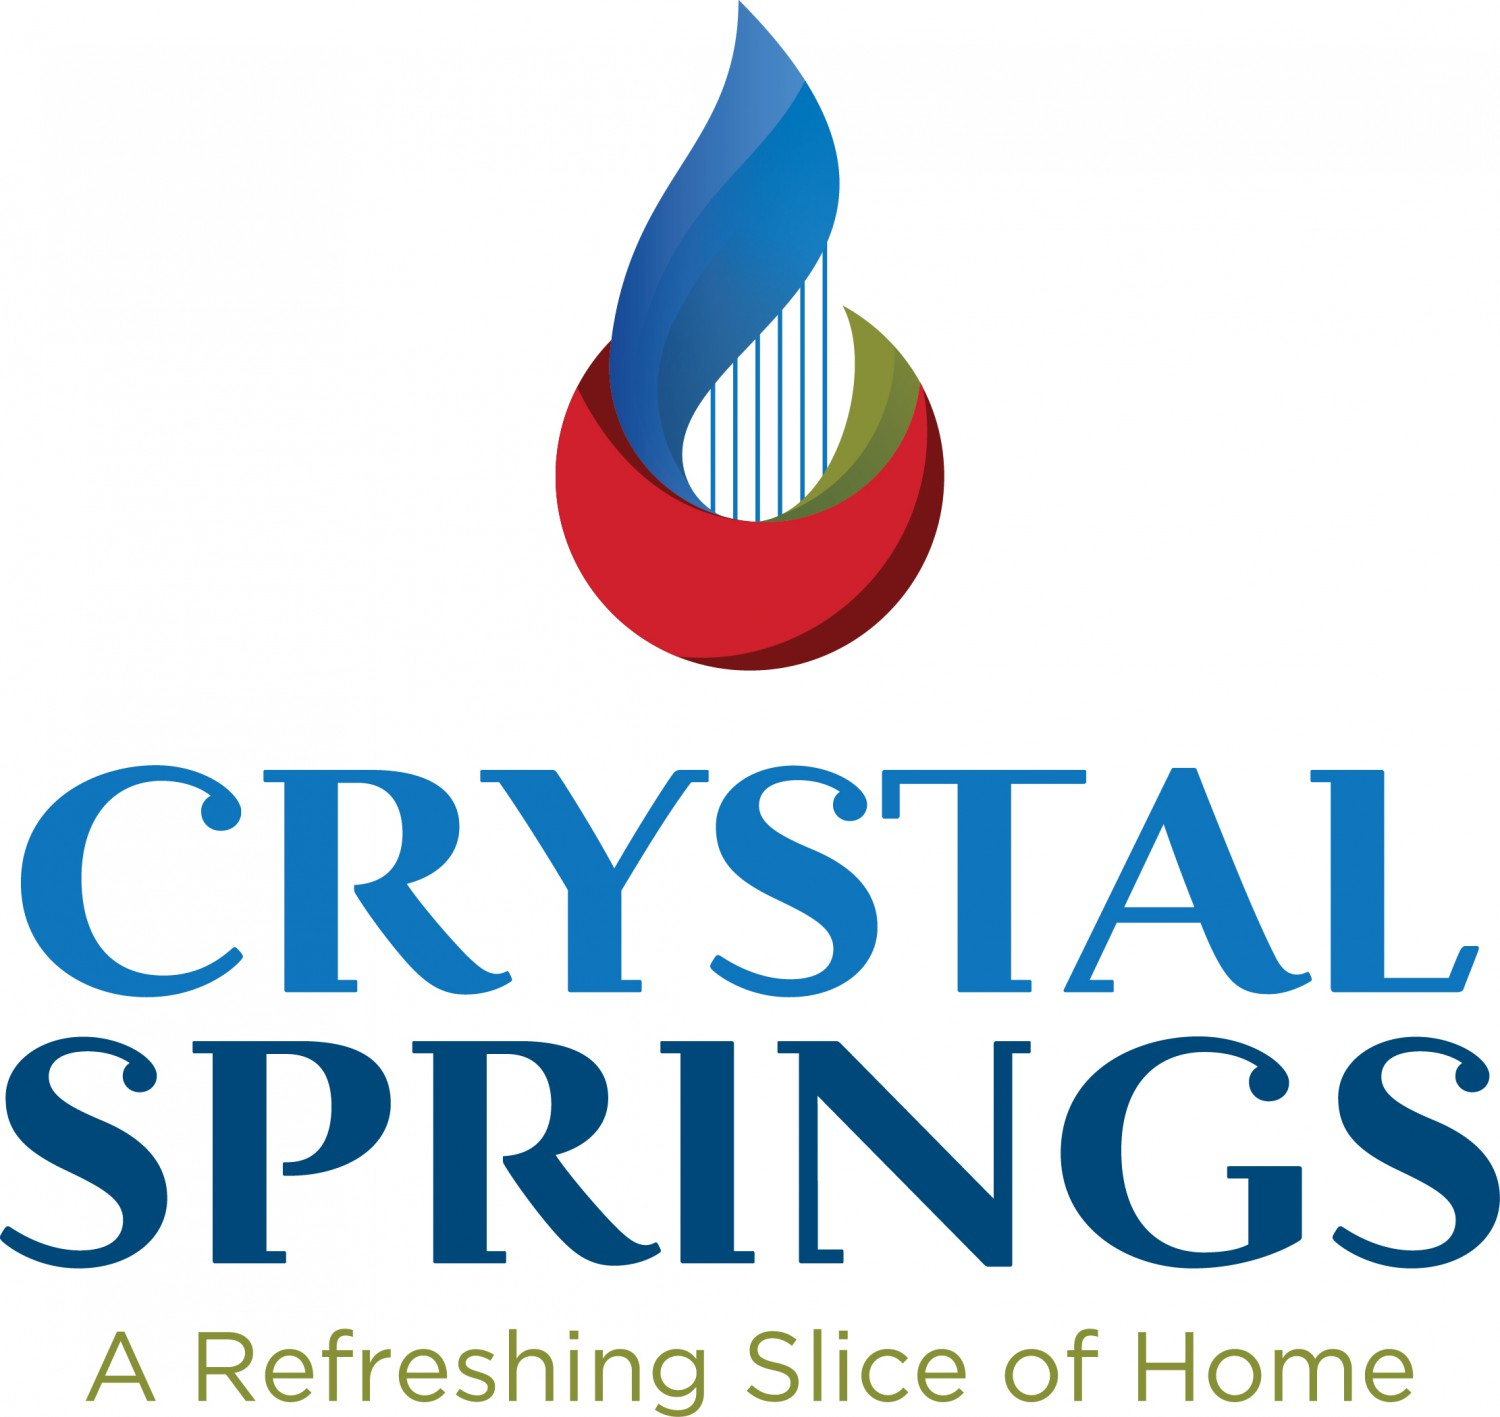 crystal springs single girls Crystal springs's best 100% free online dating site meet loads of available single women in crystal springs with mingle2's crystal springs dating services find a girlfriend or lover in crystal springs, or just have fun flirting online with crystal springs single girls mingle2 is full of hot crystal springs girls waiting to hear from you.